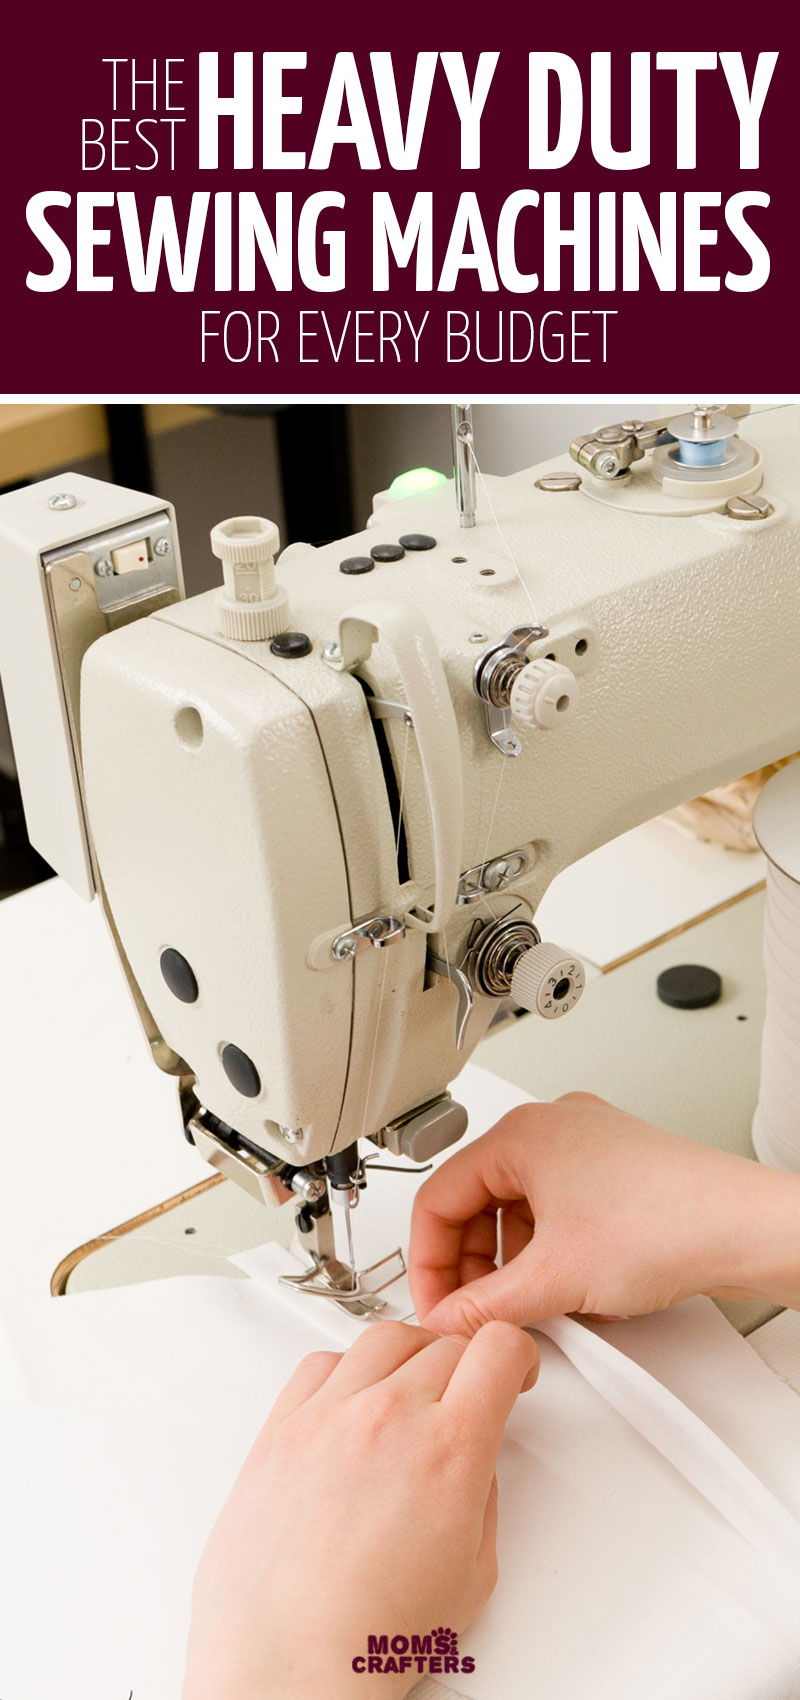 Looking for the best heavy duty sewing machine for your needs? Click for a list of some of my favorites for sewing heavyweight fabrics including sewing tips for buying a very versatile machine.